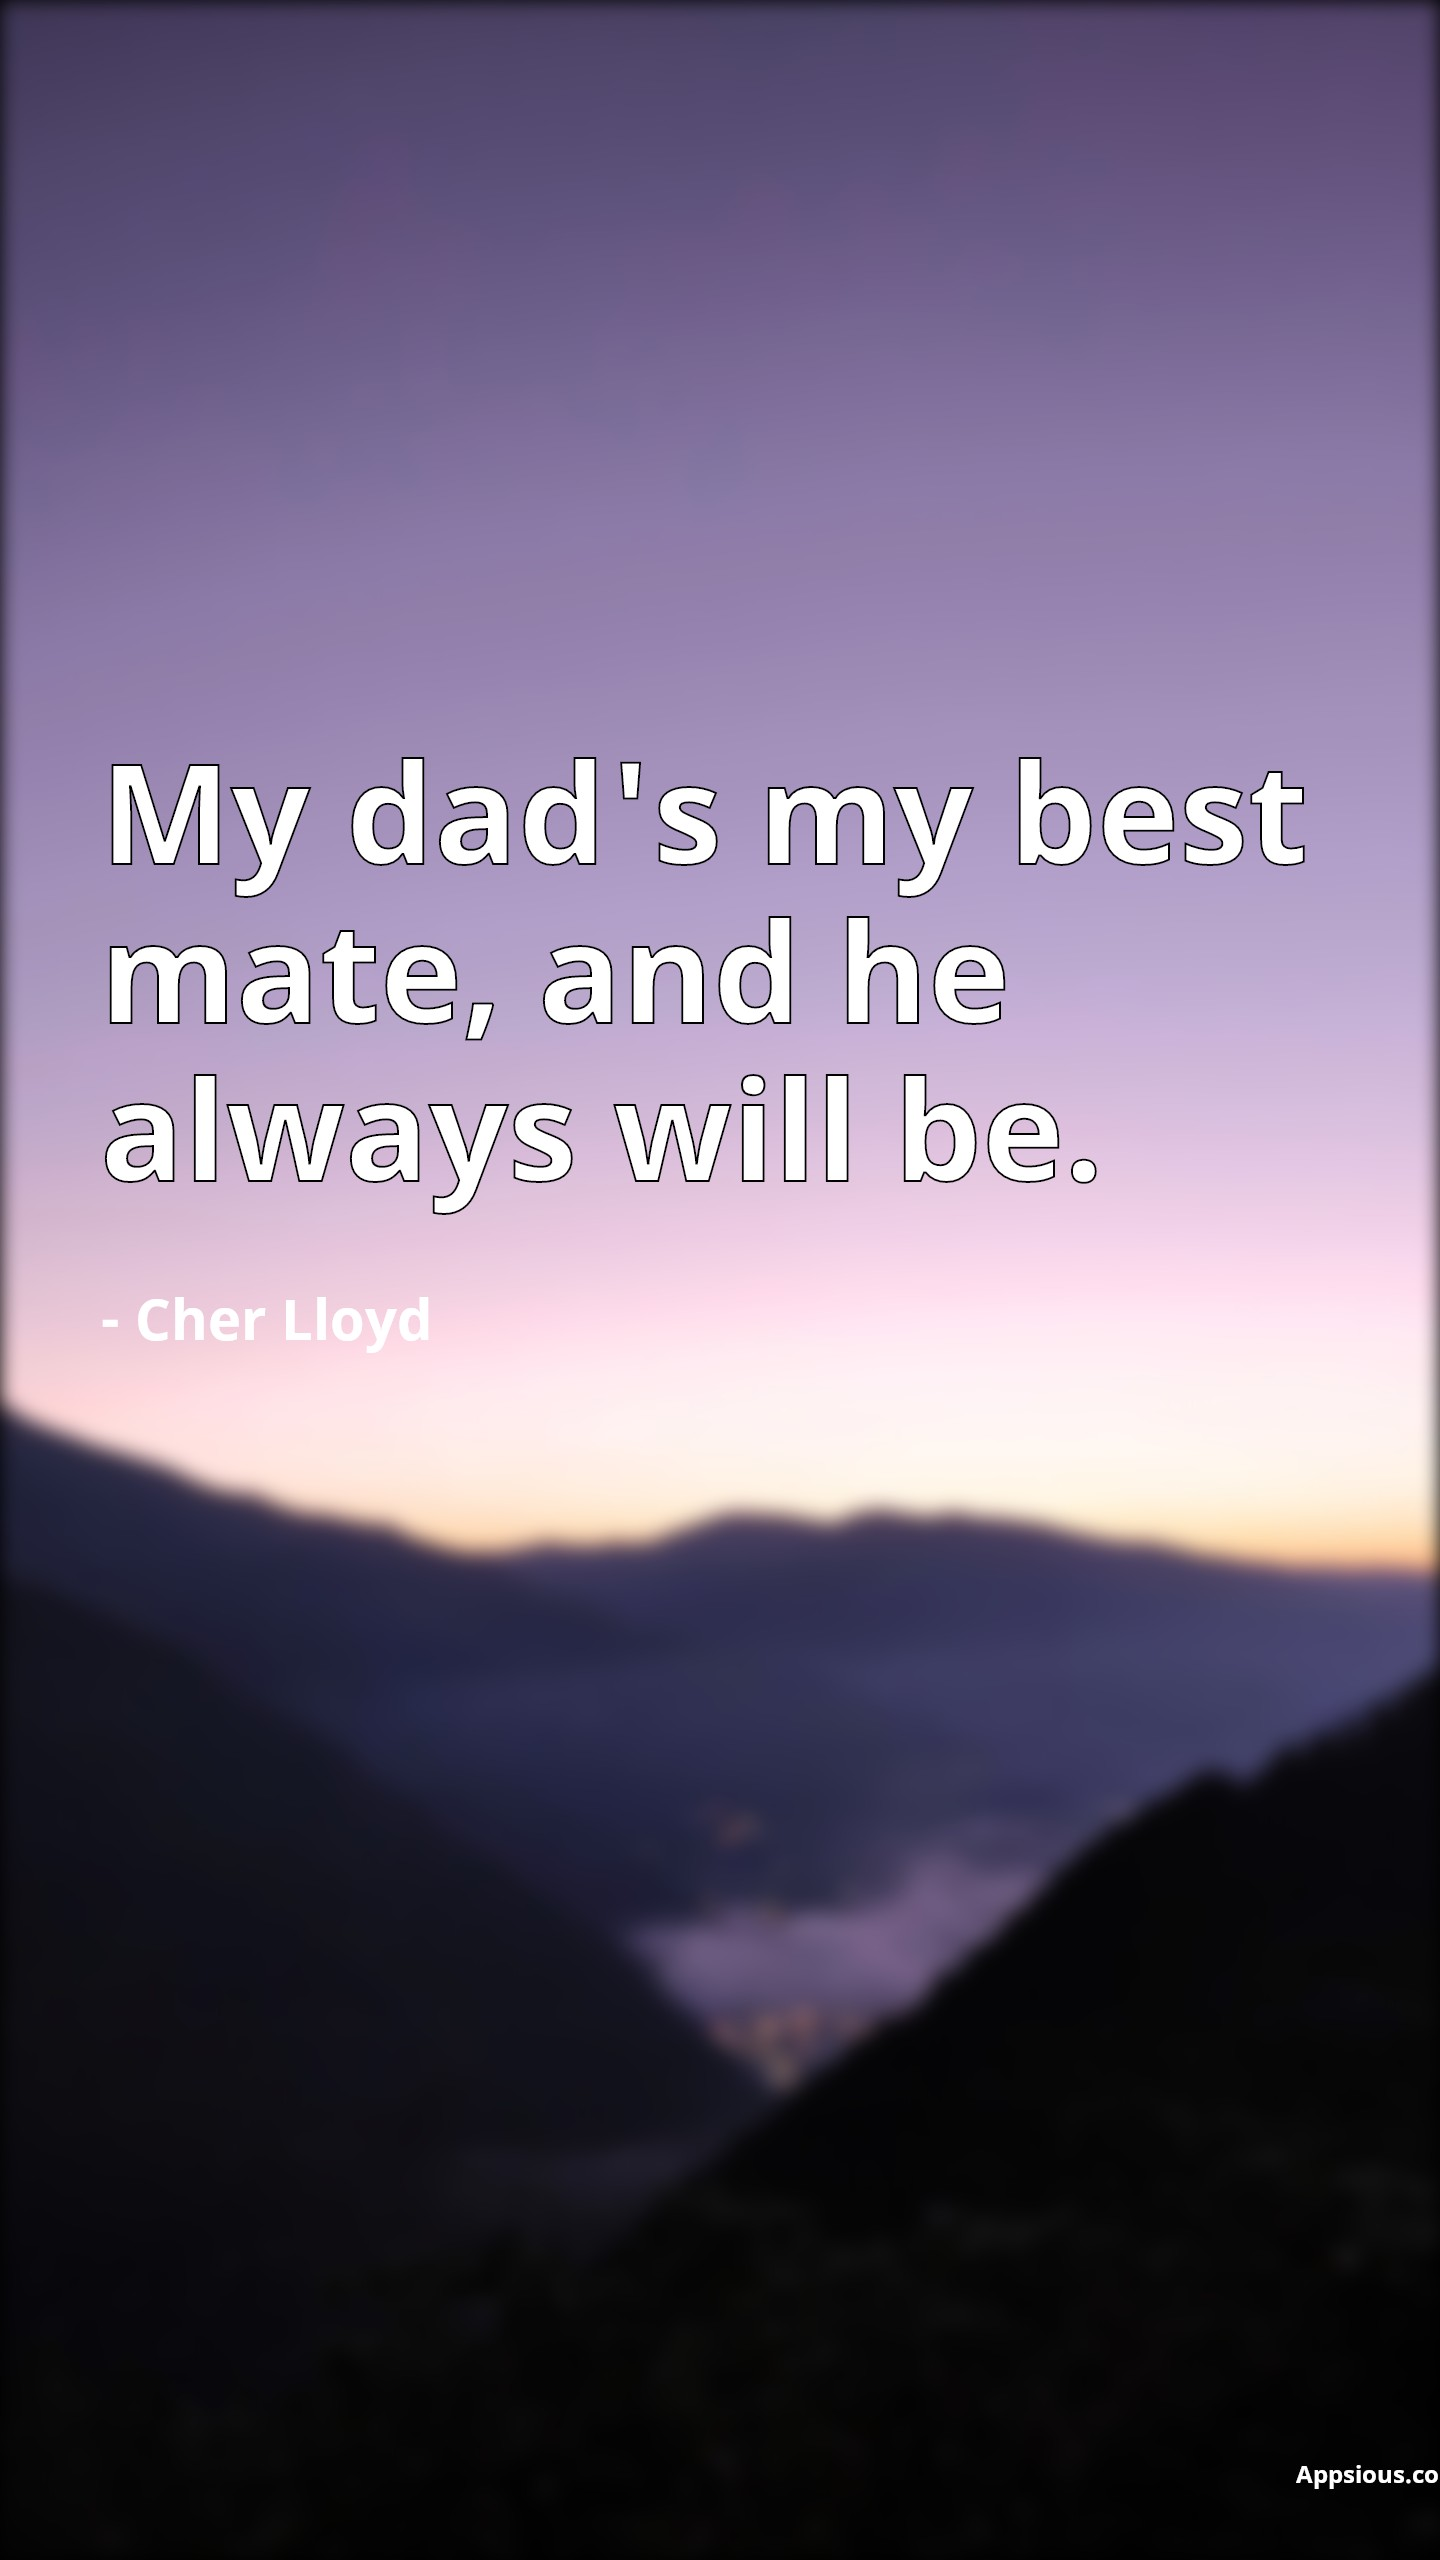 My dad's my best mate, and he always will be.